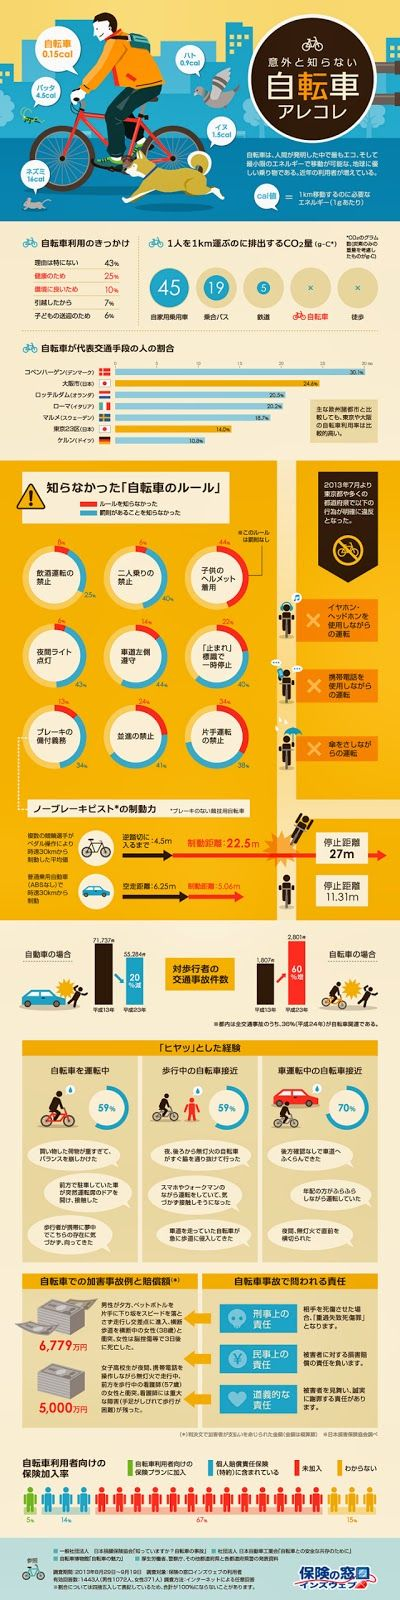 Tokyo By Bike - Cycling News & Information from Japan: Japanese Cycling Rules a Mystery for Japanese Cyclists (Infographic)